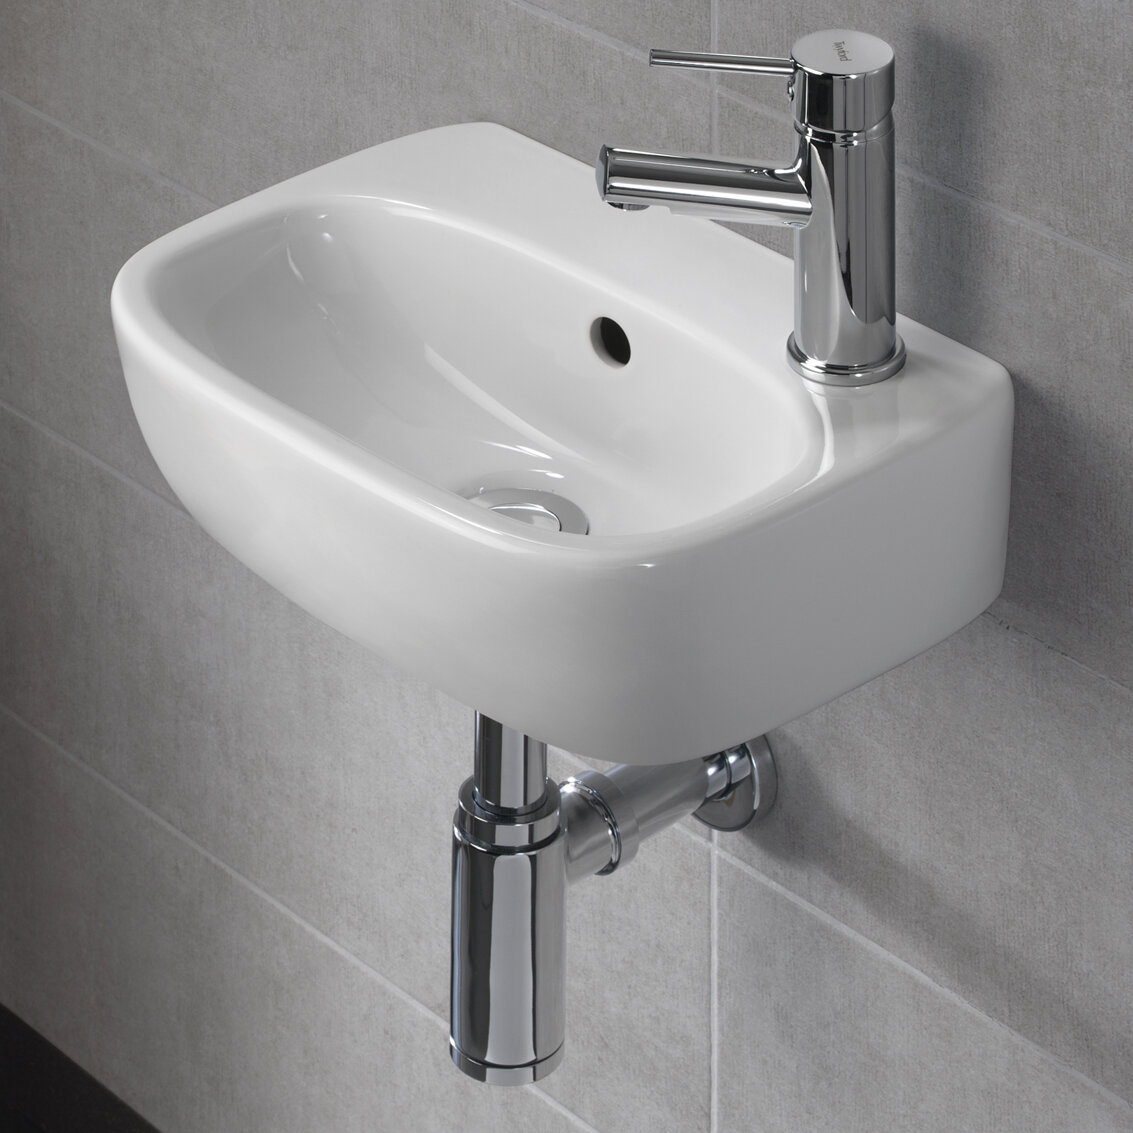 Bissonnet Moda Vitreous China 15 Wall Mount Bathroom Sink With Overflow Wayfair